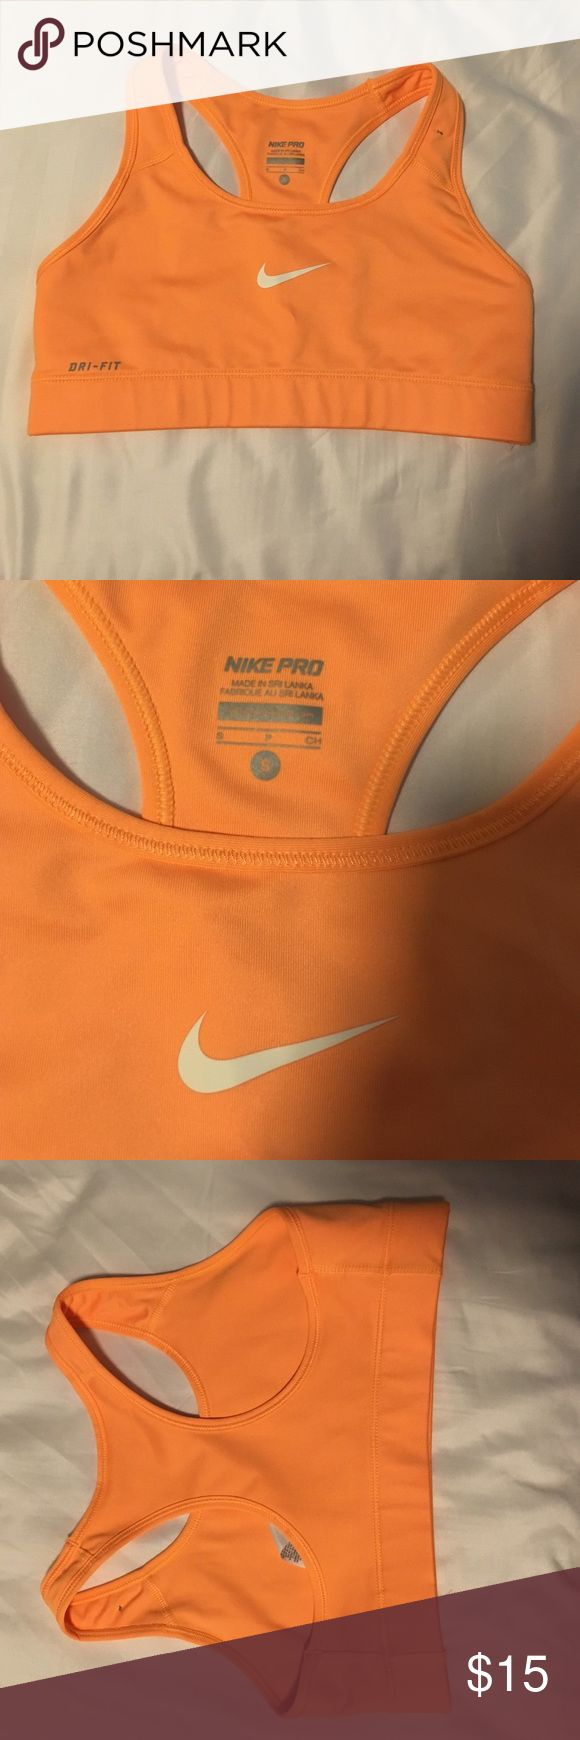 Nike pro bright orange sports bra size small Like new condition only tried on once. Size small. Nike Other